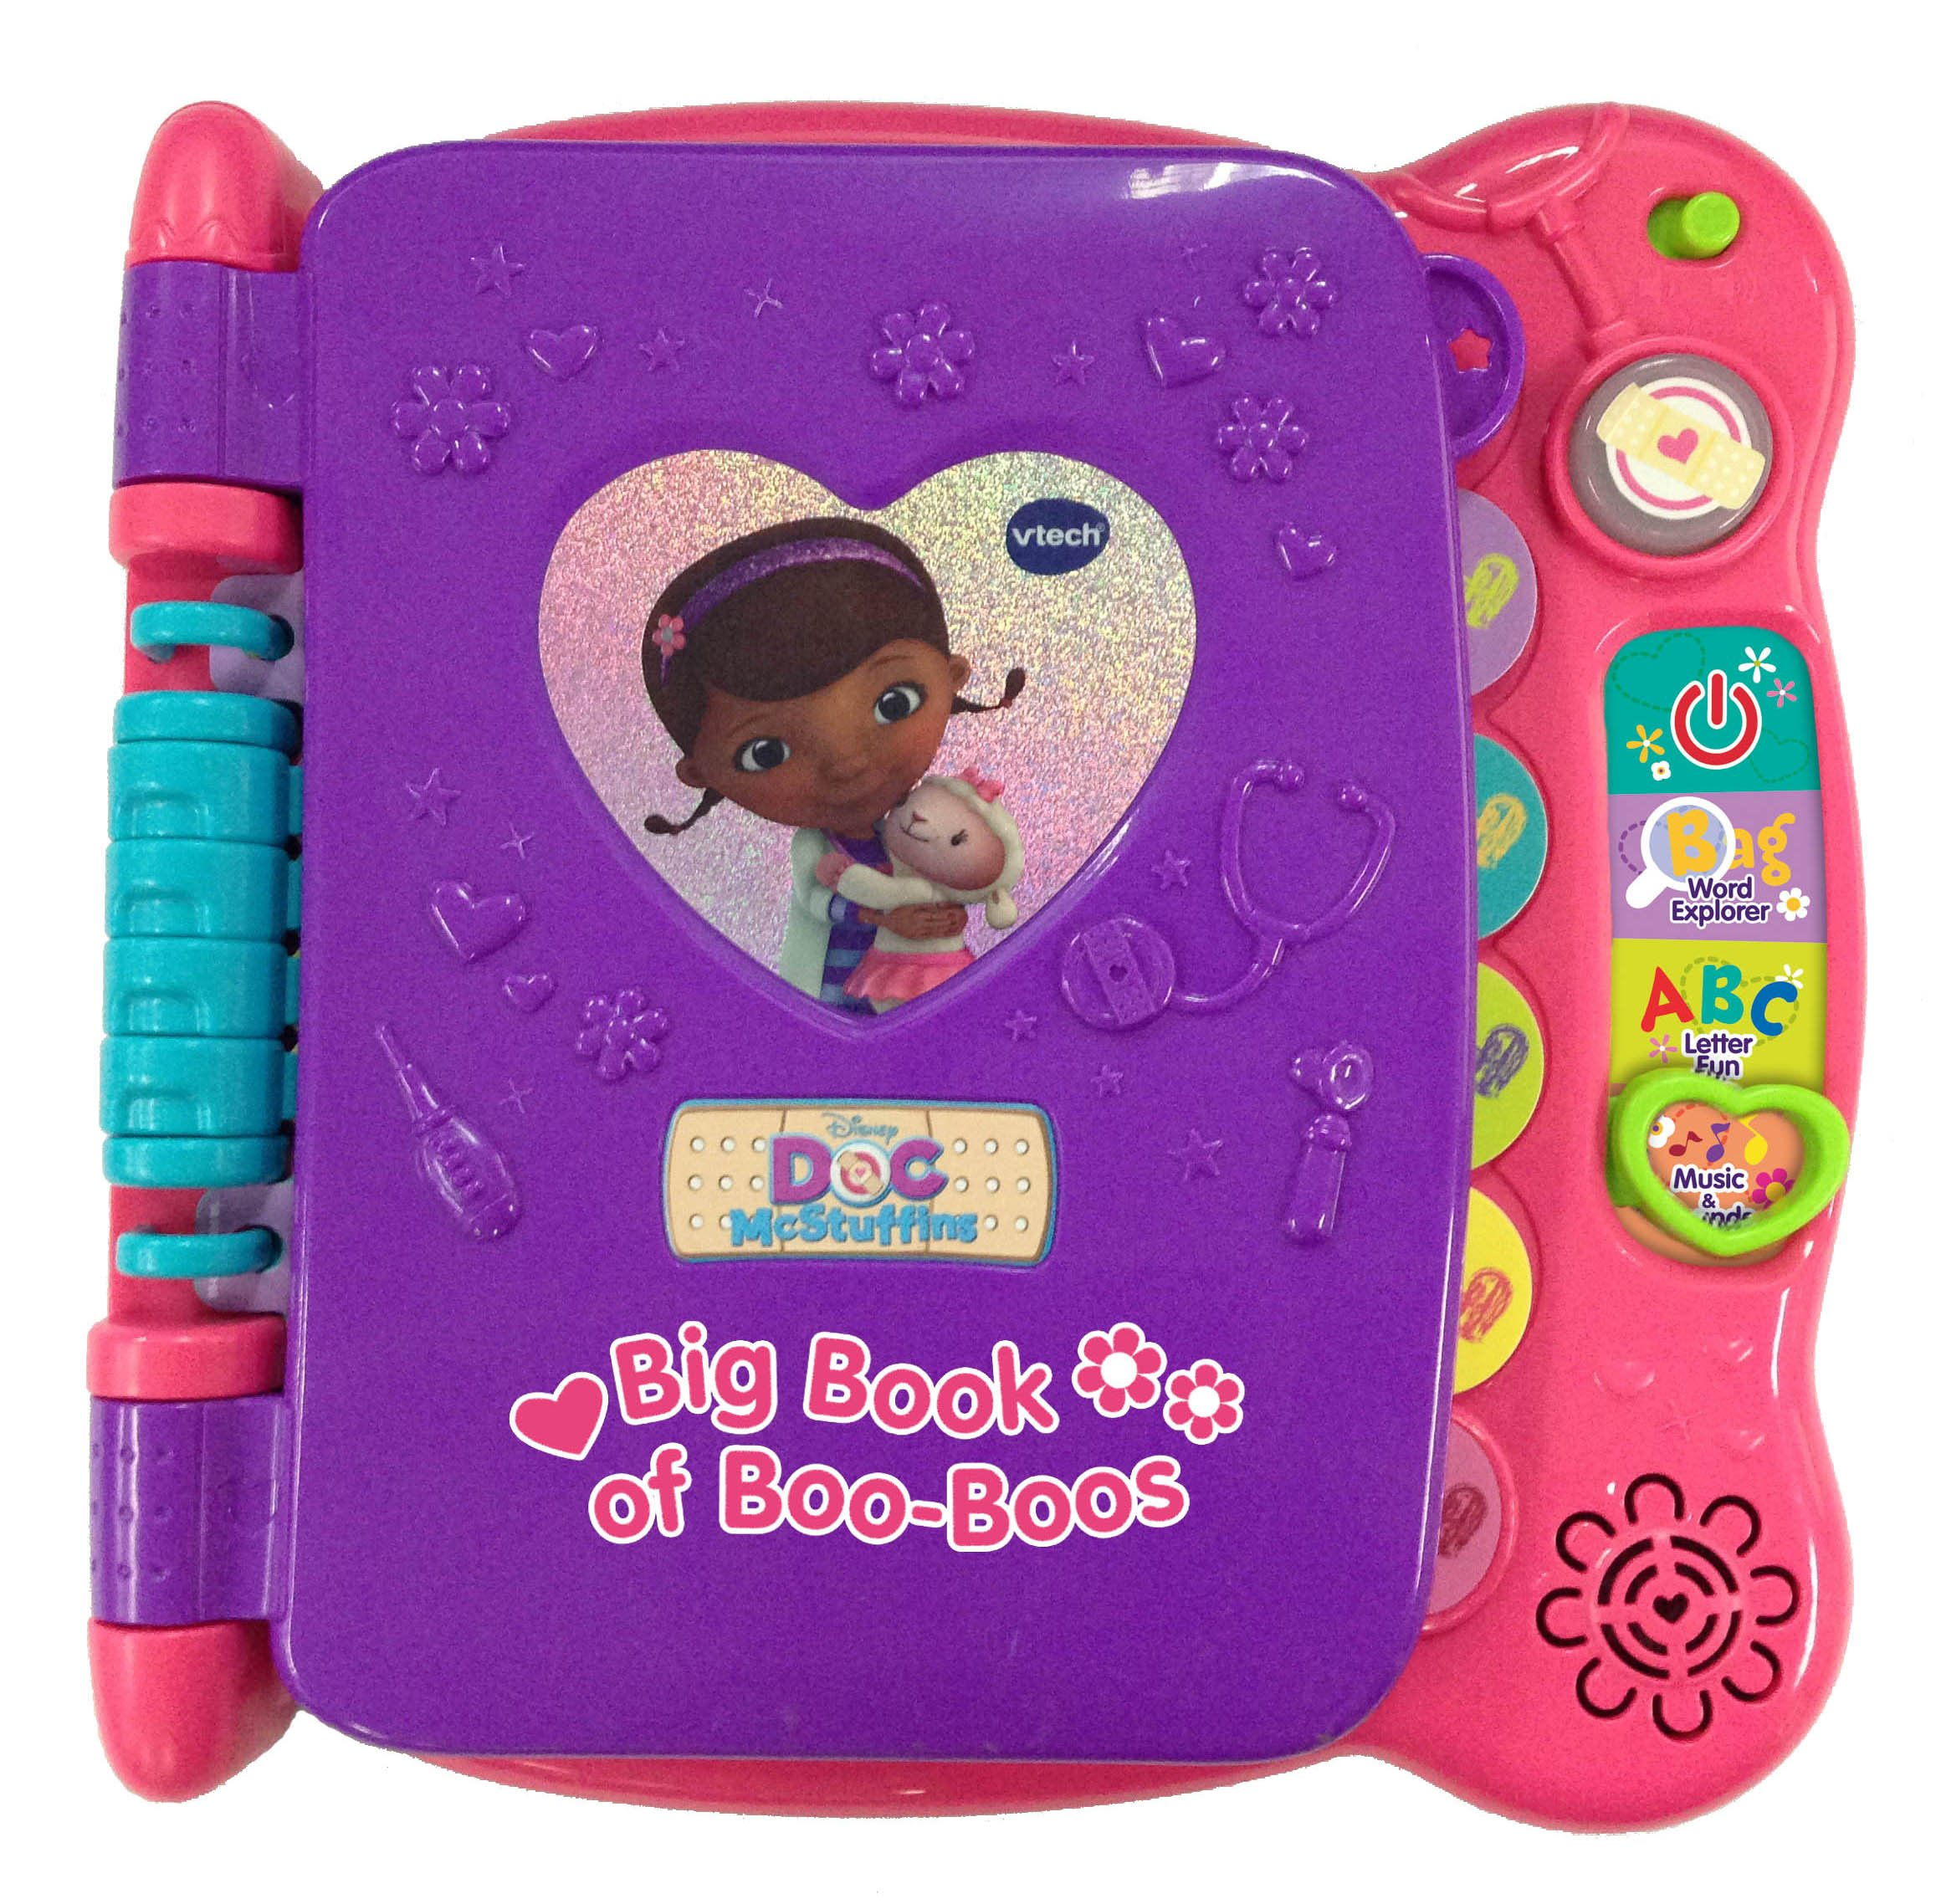 VTech Disney Doc McStuffins Discover and Learn Big Book of Boo-Boos by VTech (Image #1)